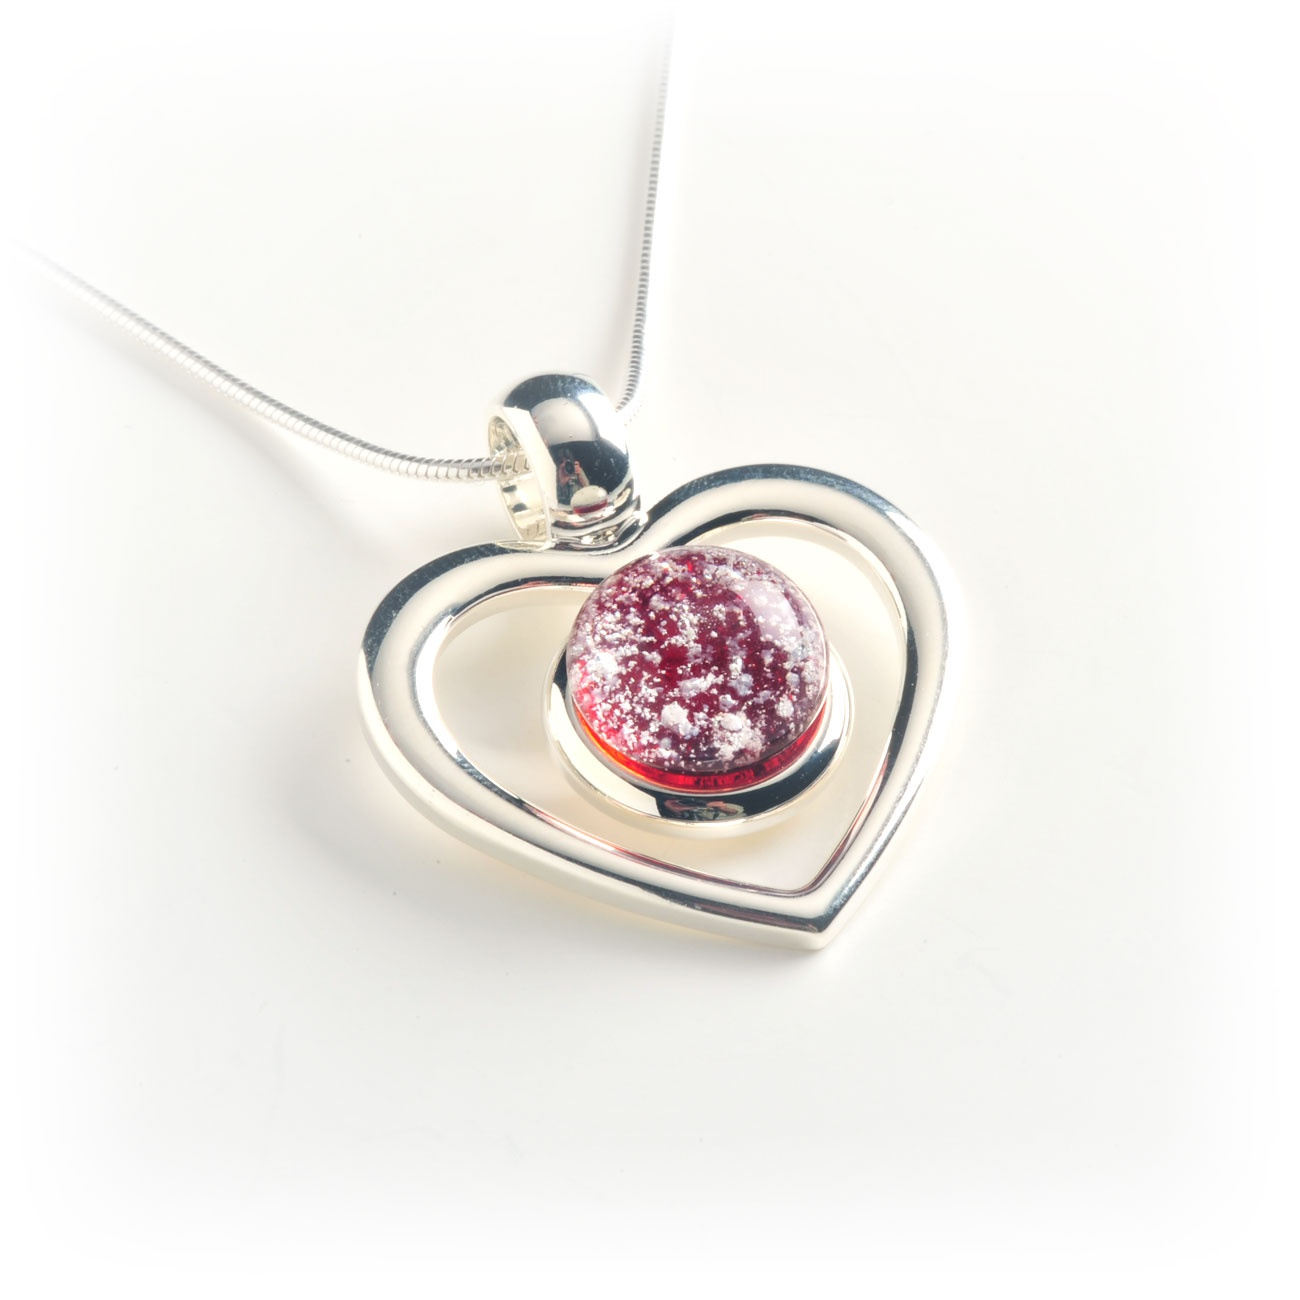 Grateful Glass20-2194red_heart_pendant.jpg551